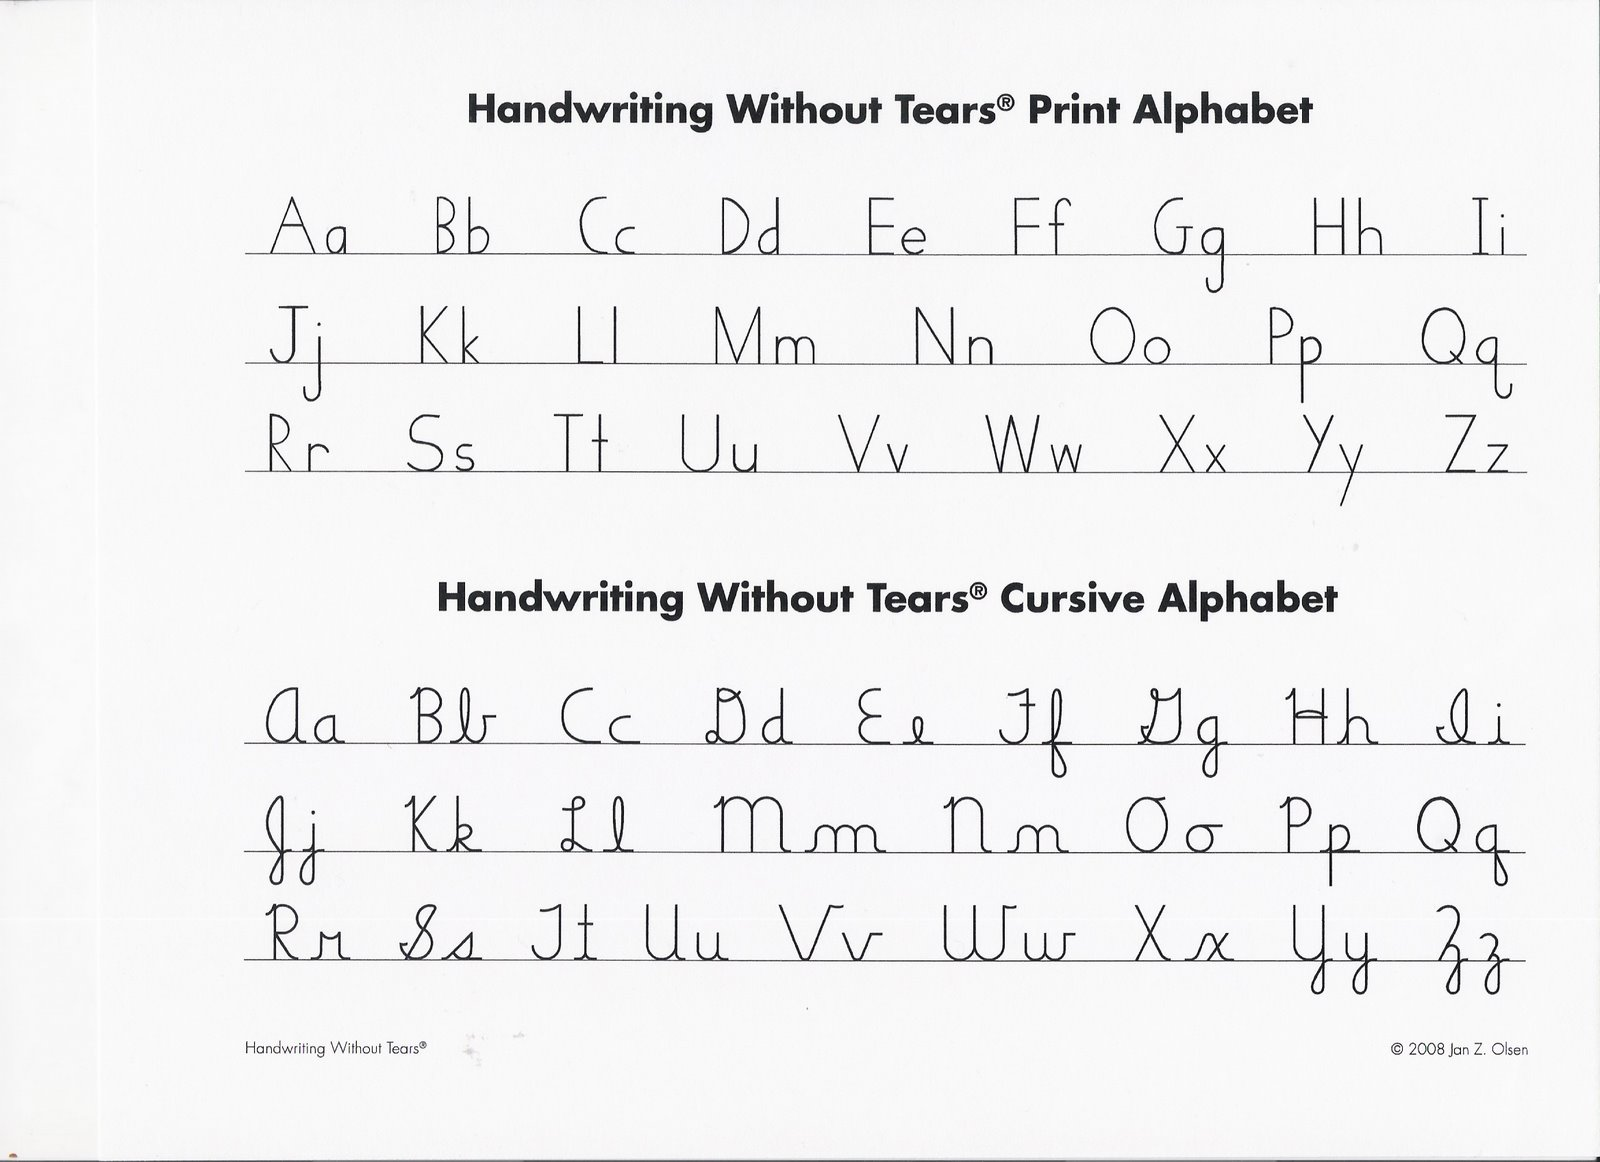 Printables Handwriting Without Tears Cursive Worksheets Gotaplet Thousands Of Printable Activities